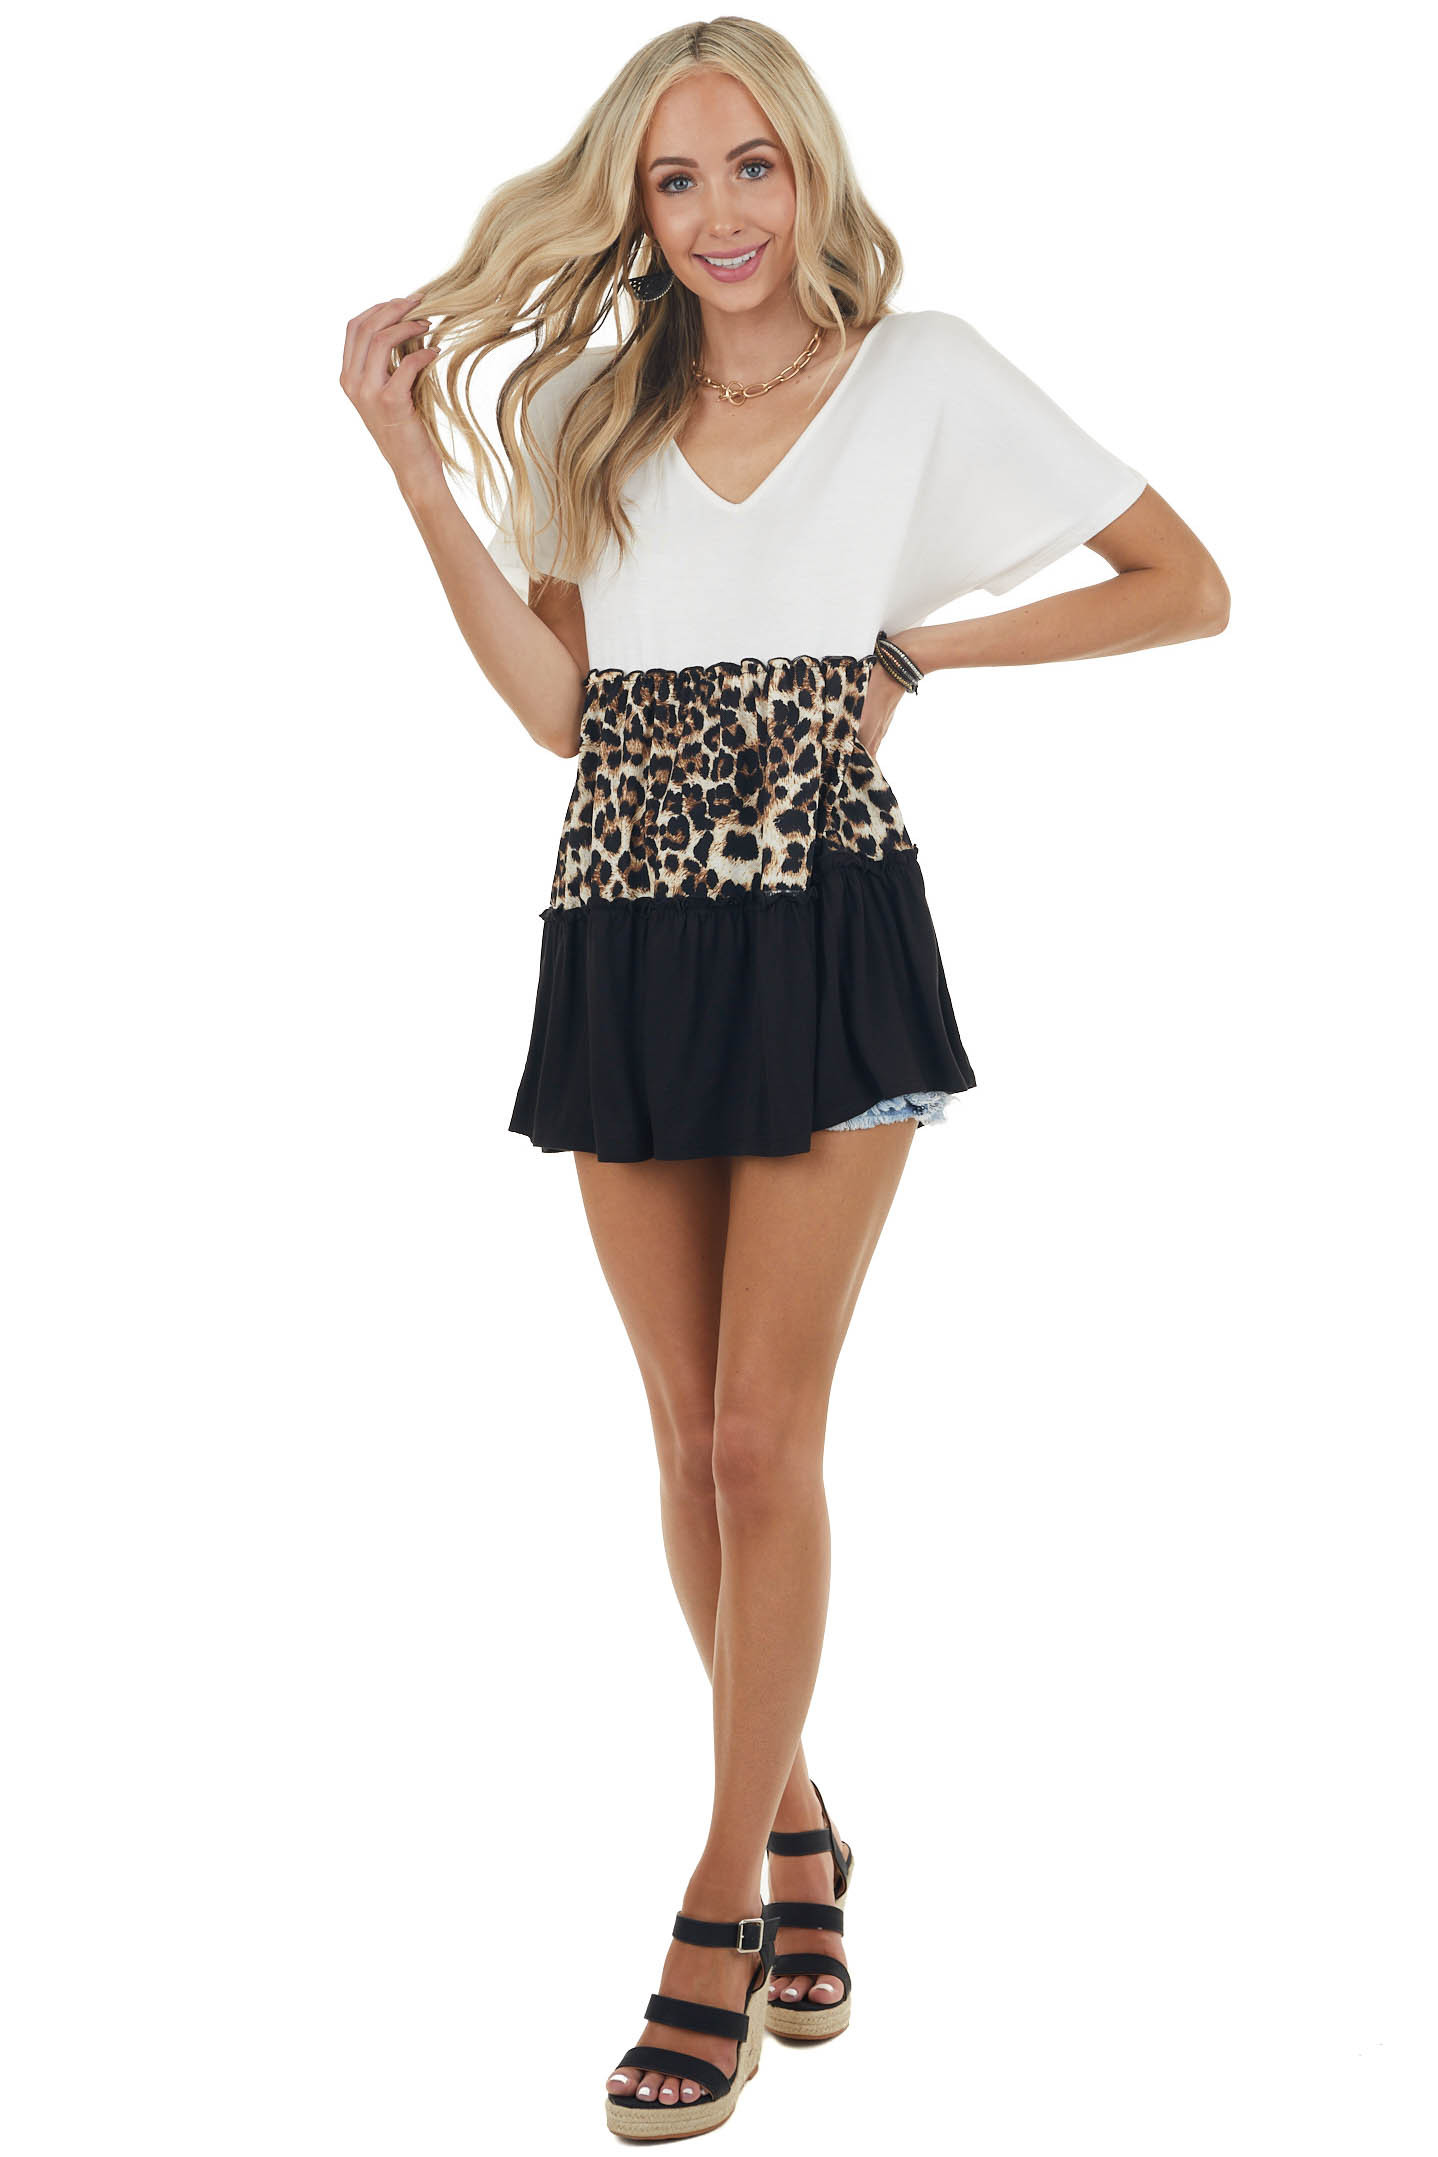 Ivory and Leopard Print Colorblock Stretchy Knit Tunic Top